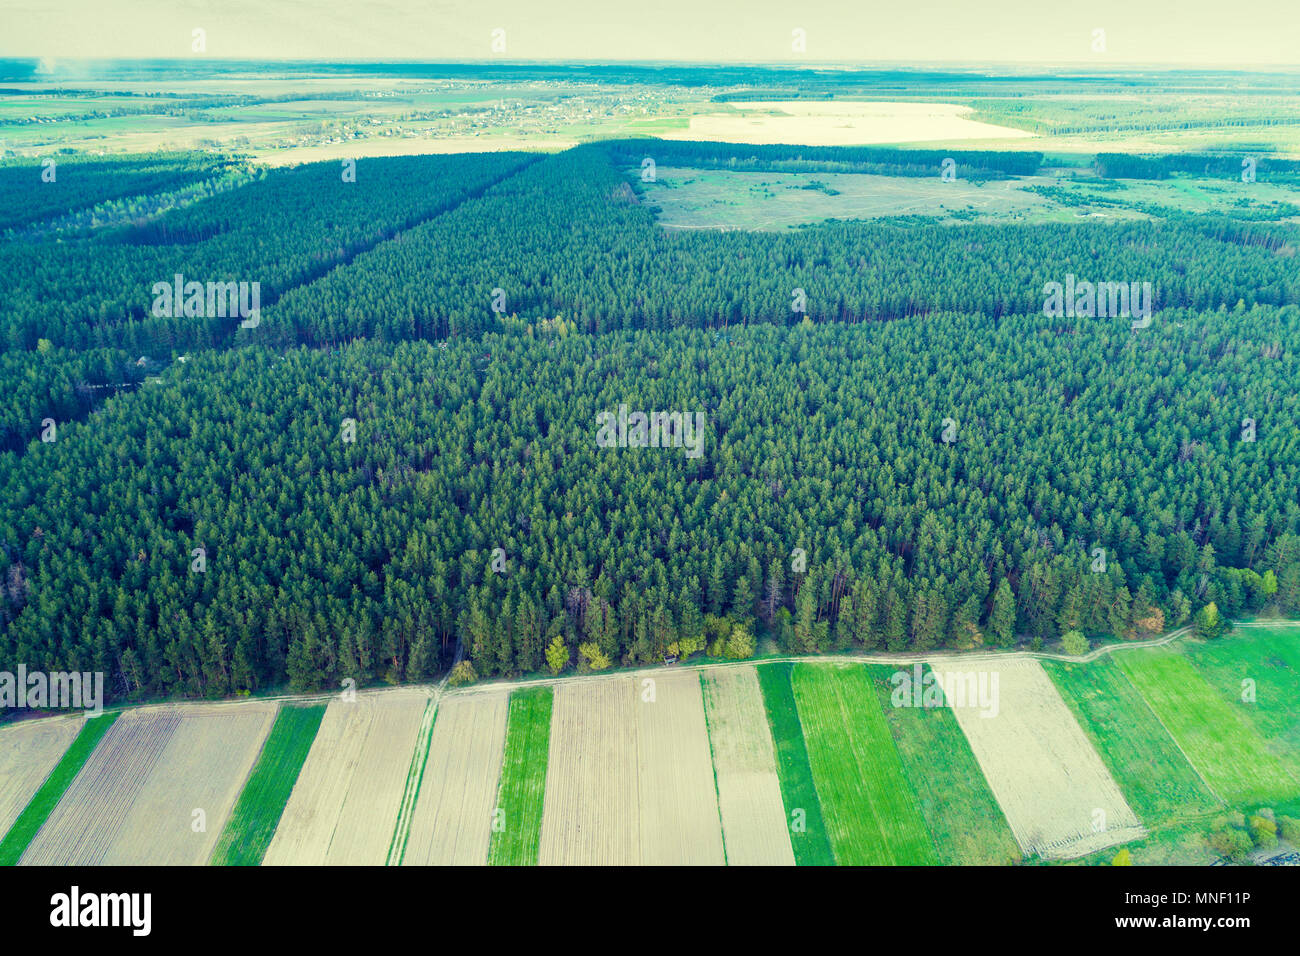 Aerial view of the pine forest and countrysides - Stock Image